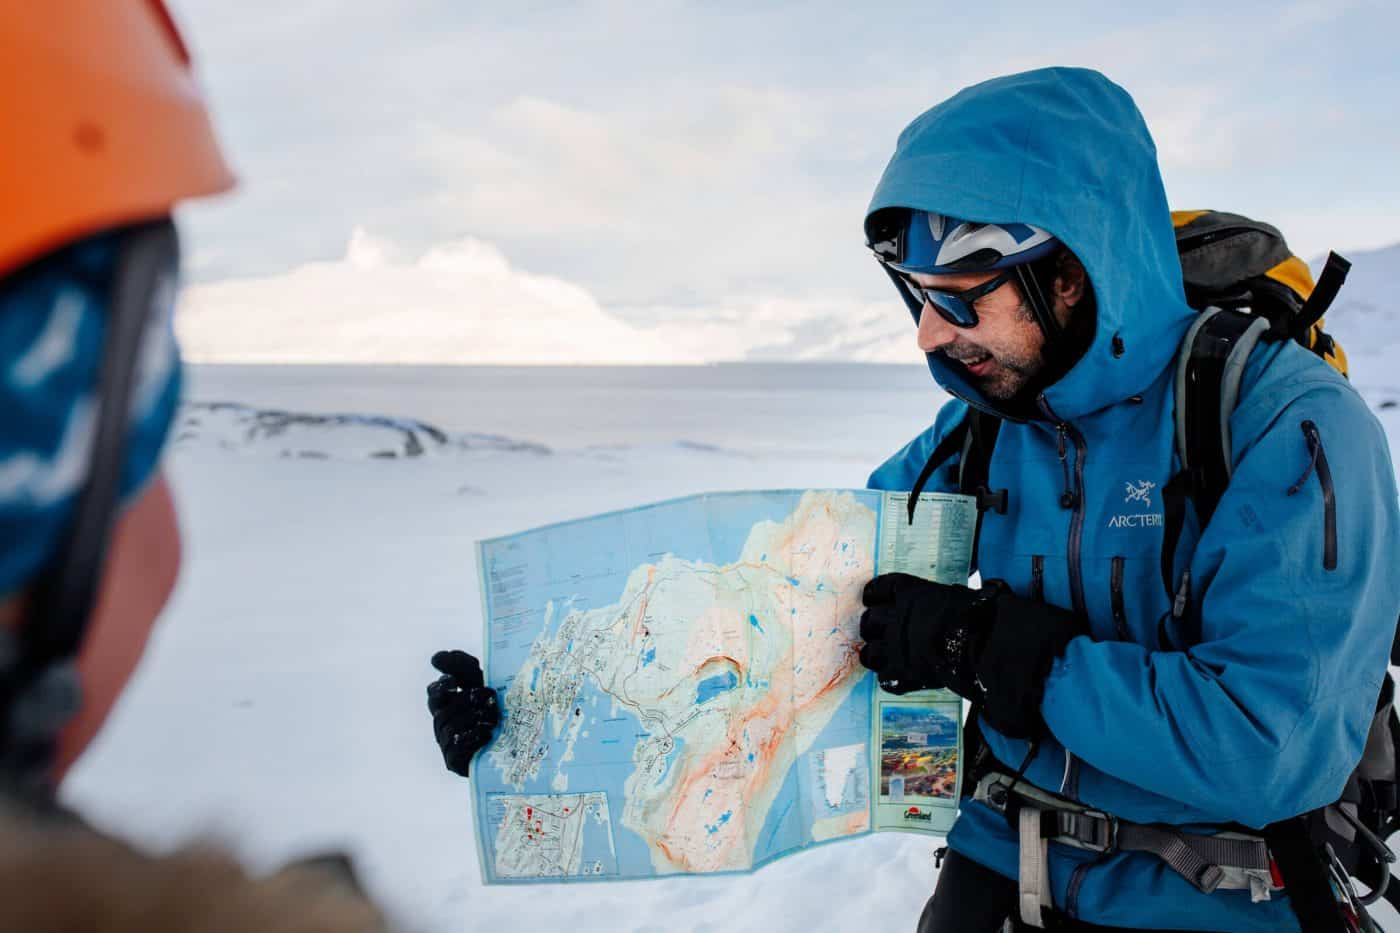 Mountain guide Marc Carreras showing hike route on Nuuk map in Greenland. By Rebecca Gustafsson